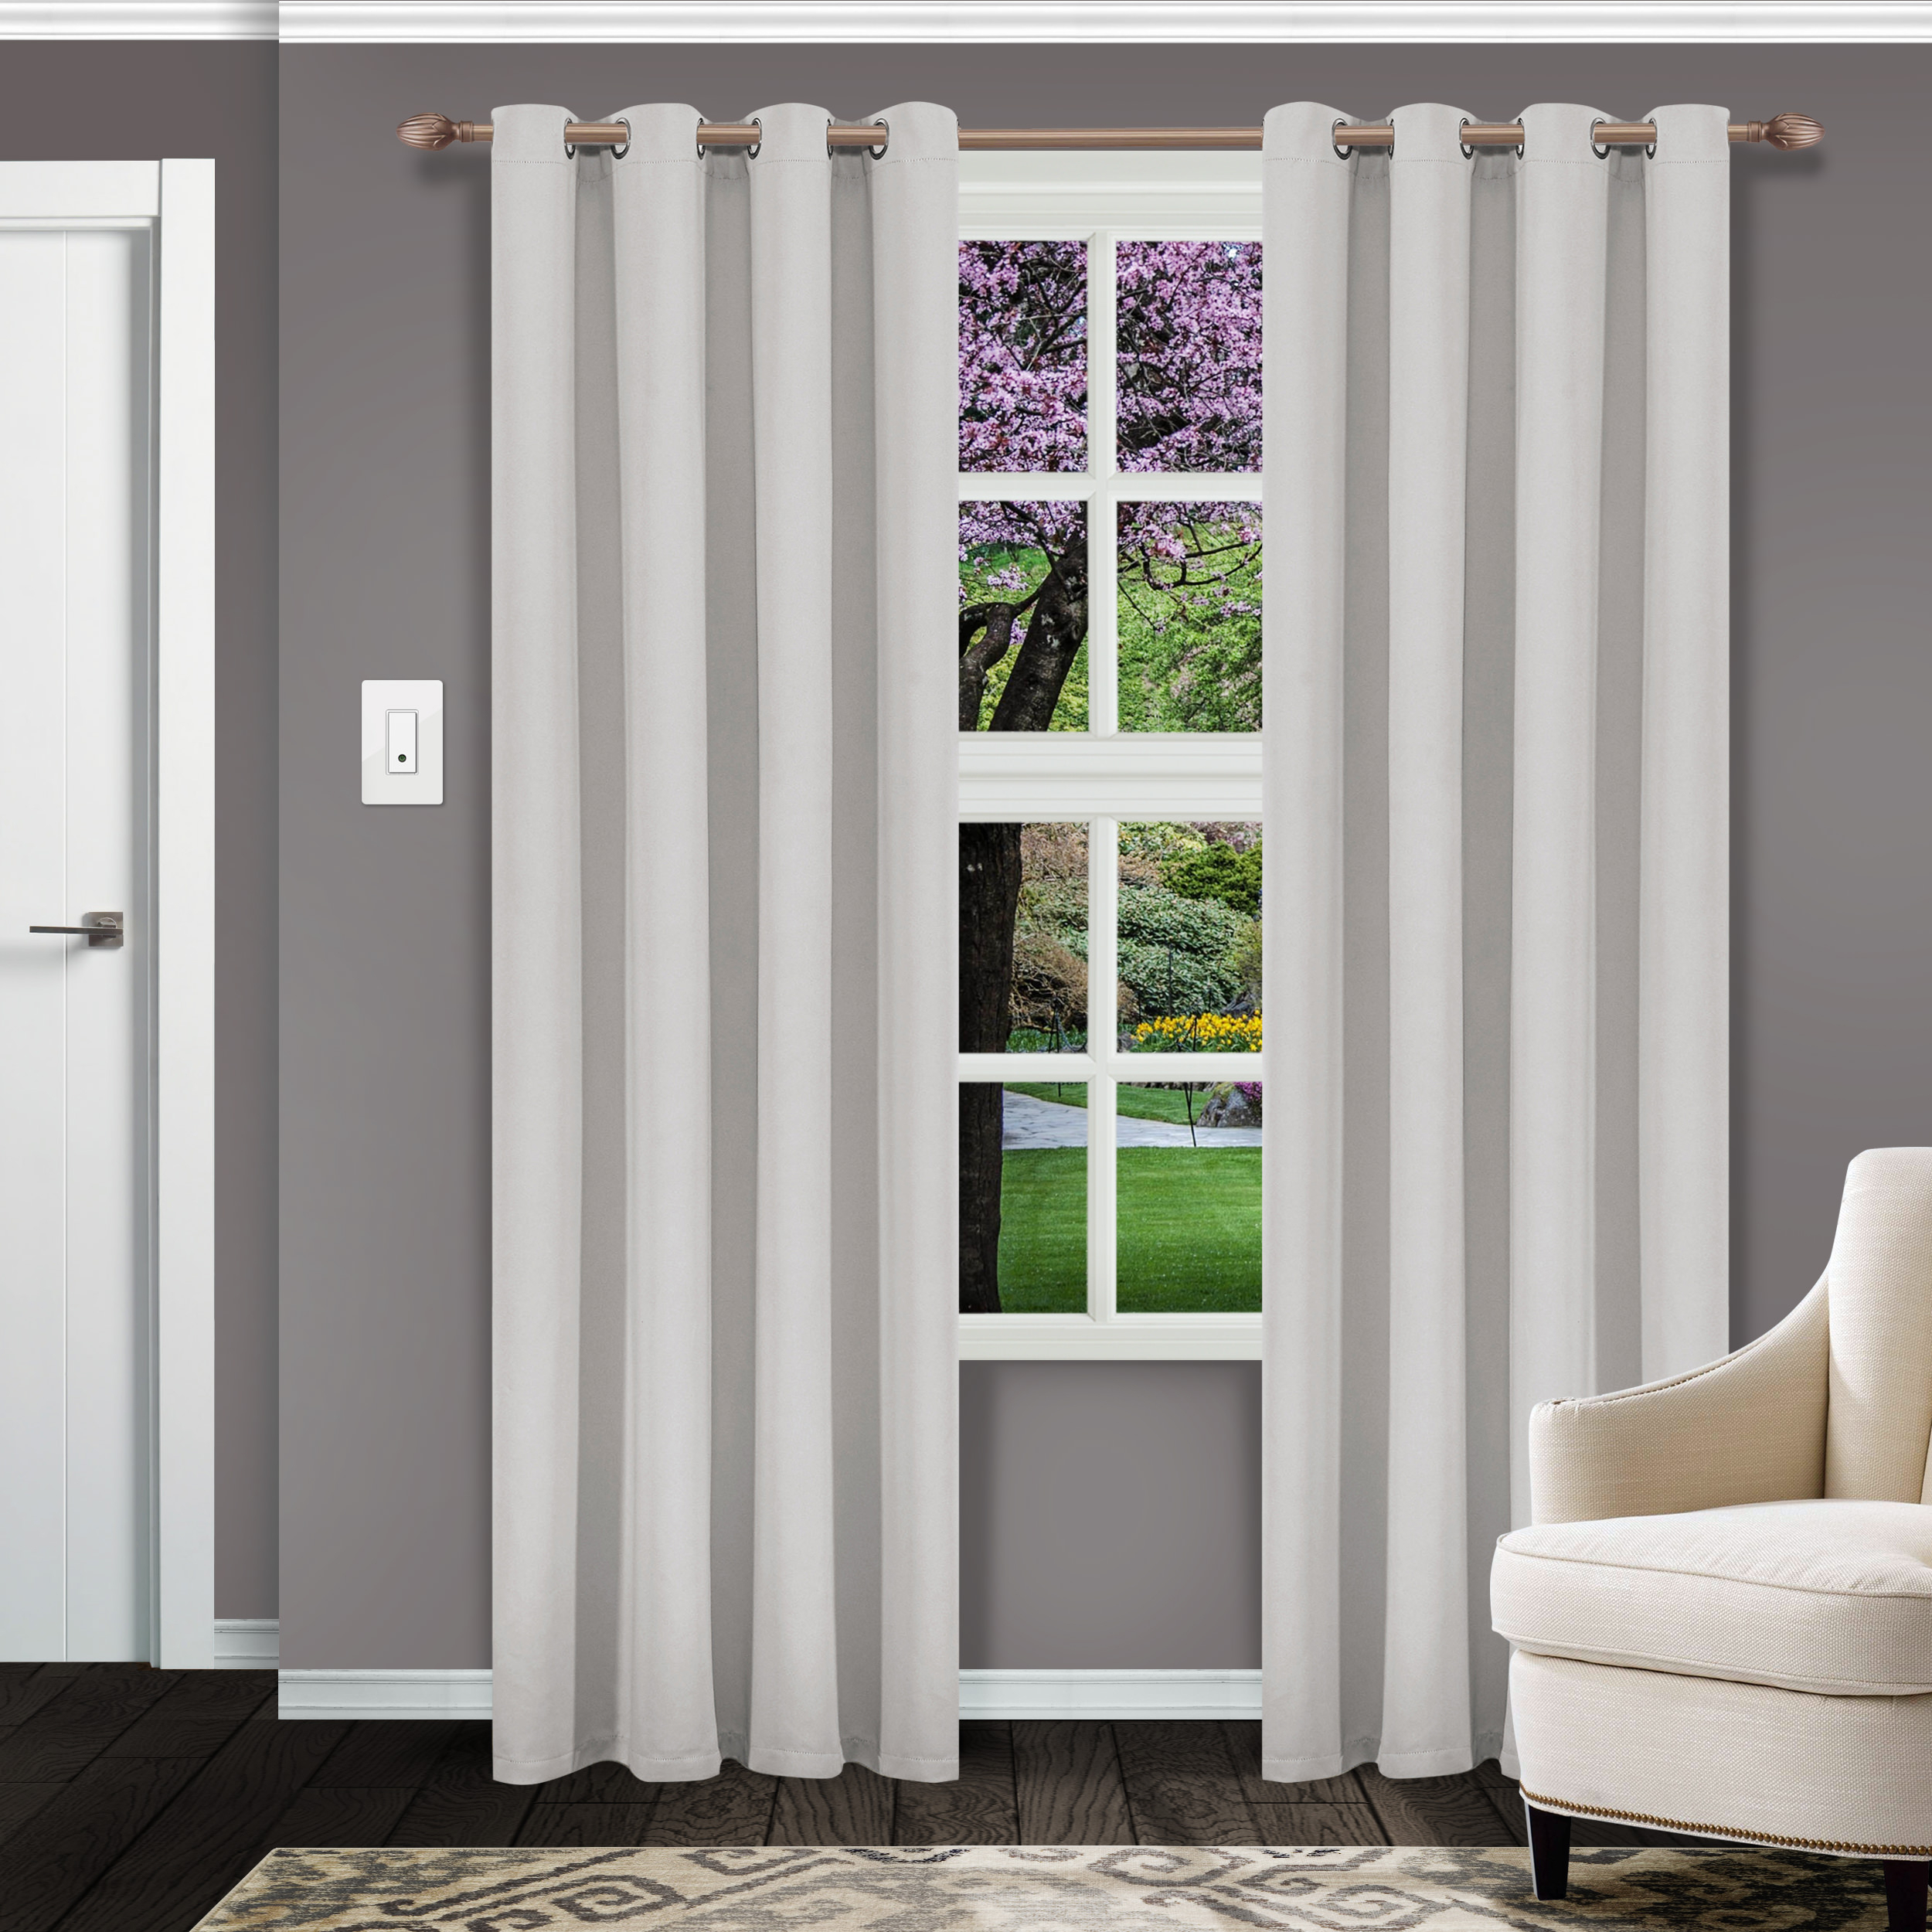 Superior Solid Textured Blackout Curtain Set Of 2,insulated Throughout Superior Leaves Insulated Thermal Blackout Grommet Curtain Panel Pairs (View 11 of 30)